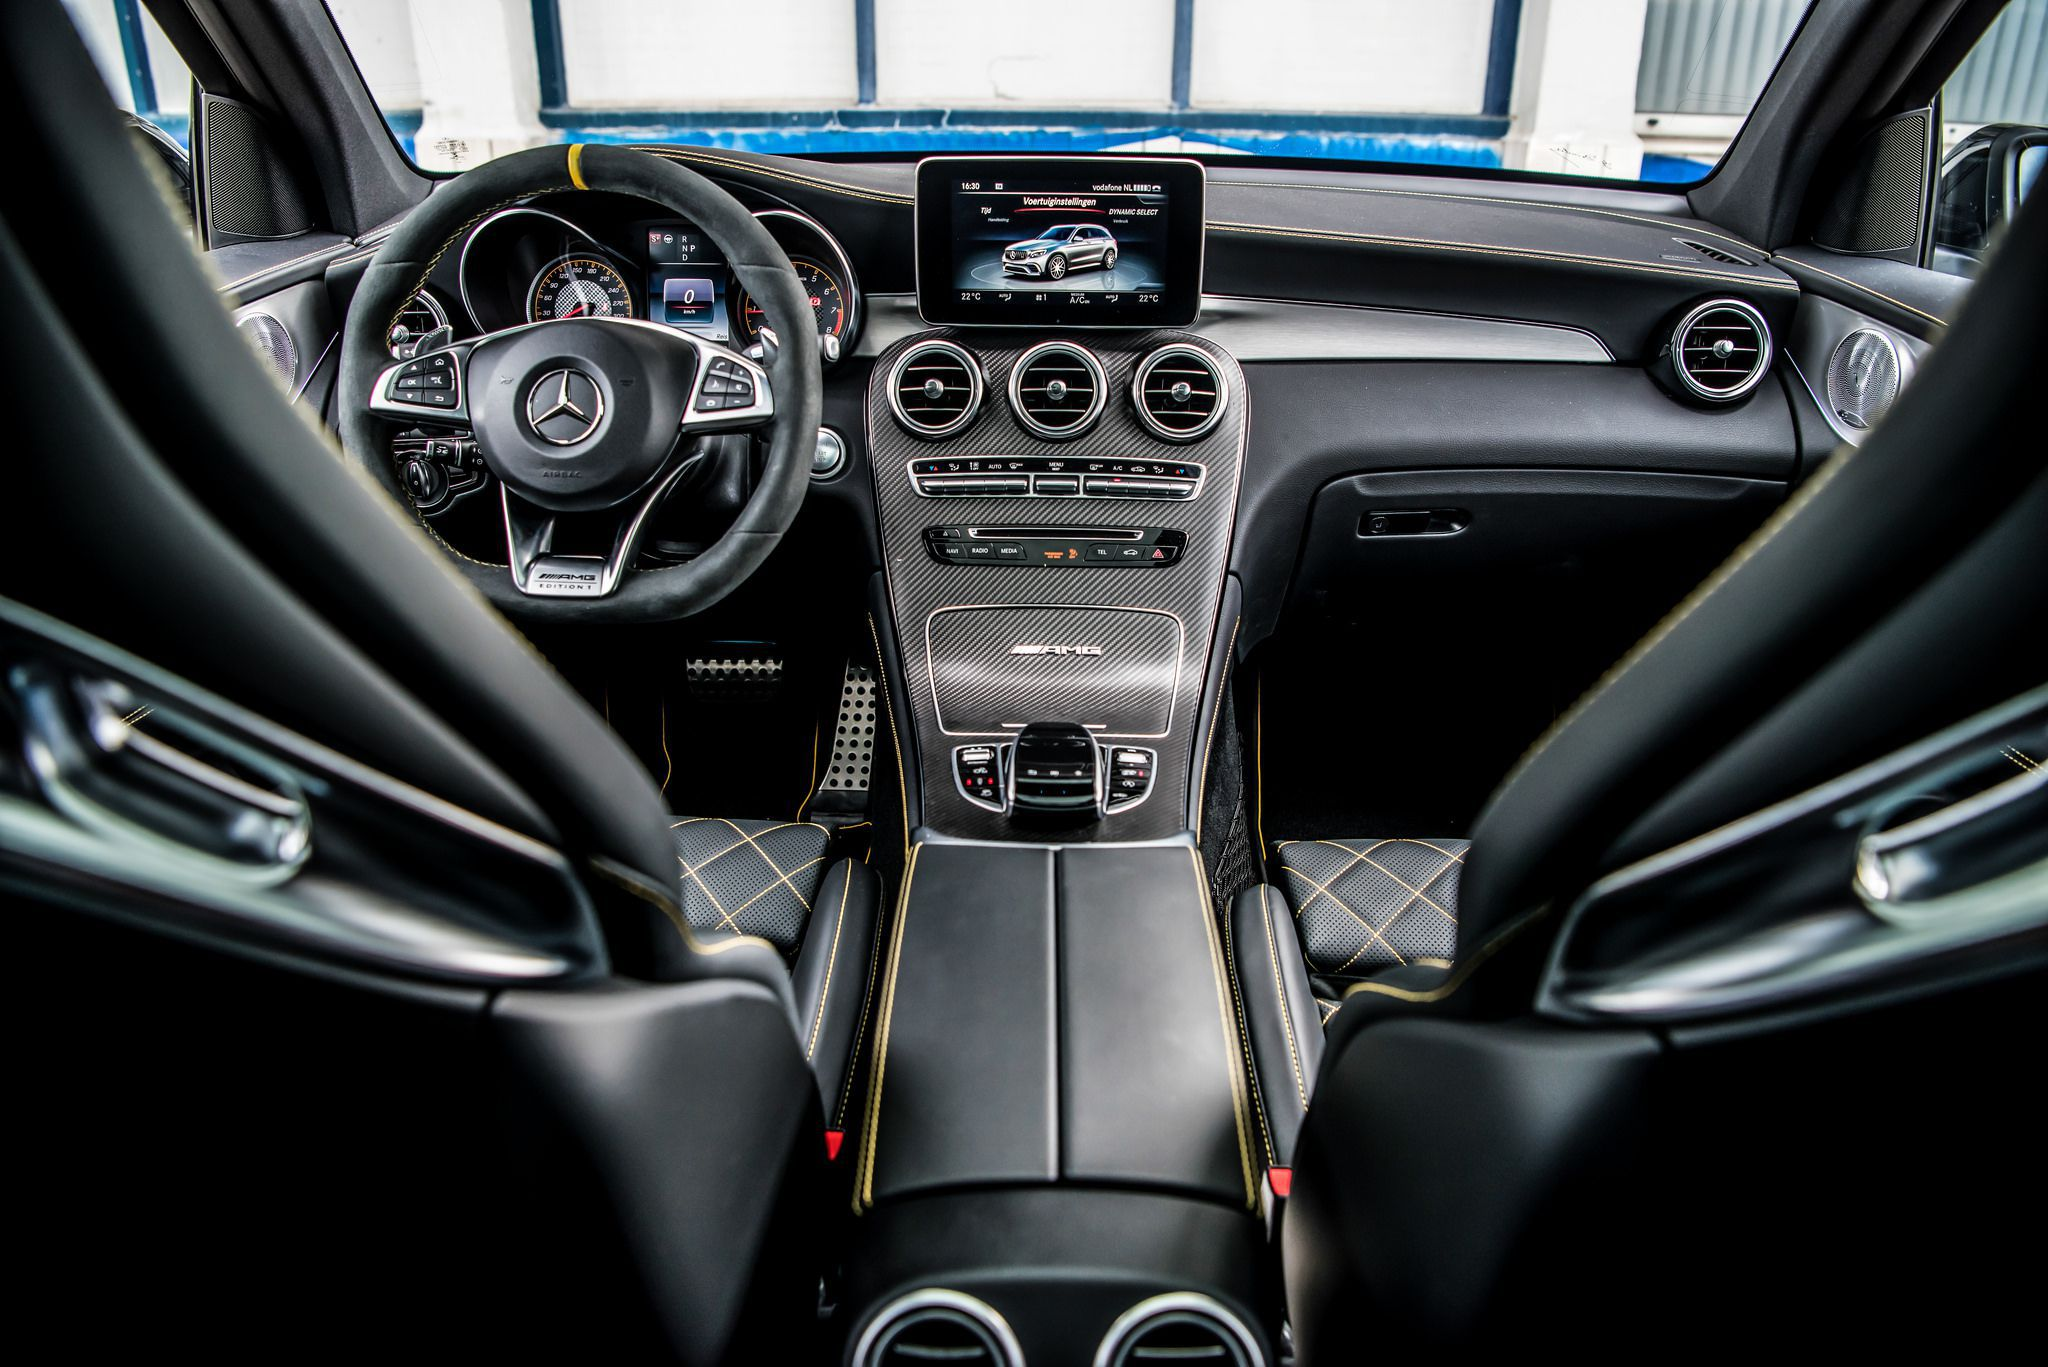 001 interior of Mercedes Benz AMG 2018 GLC63